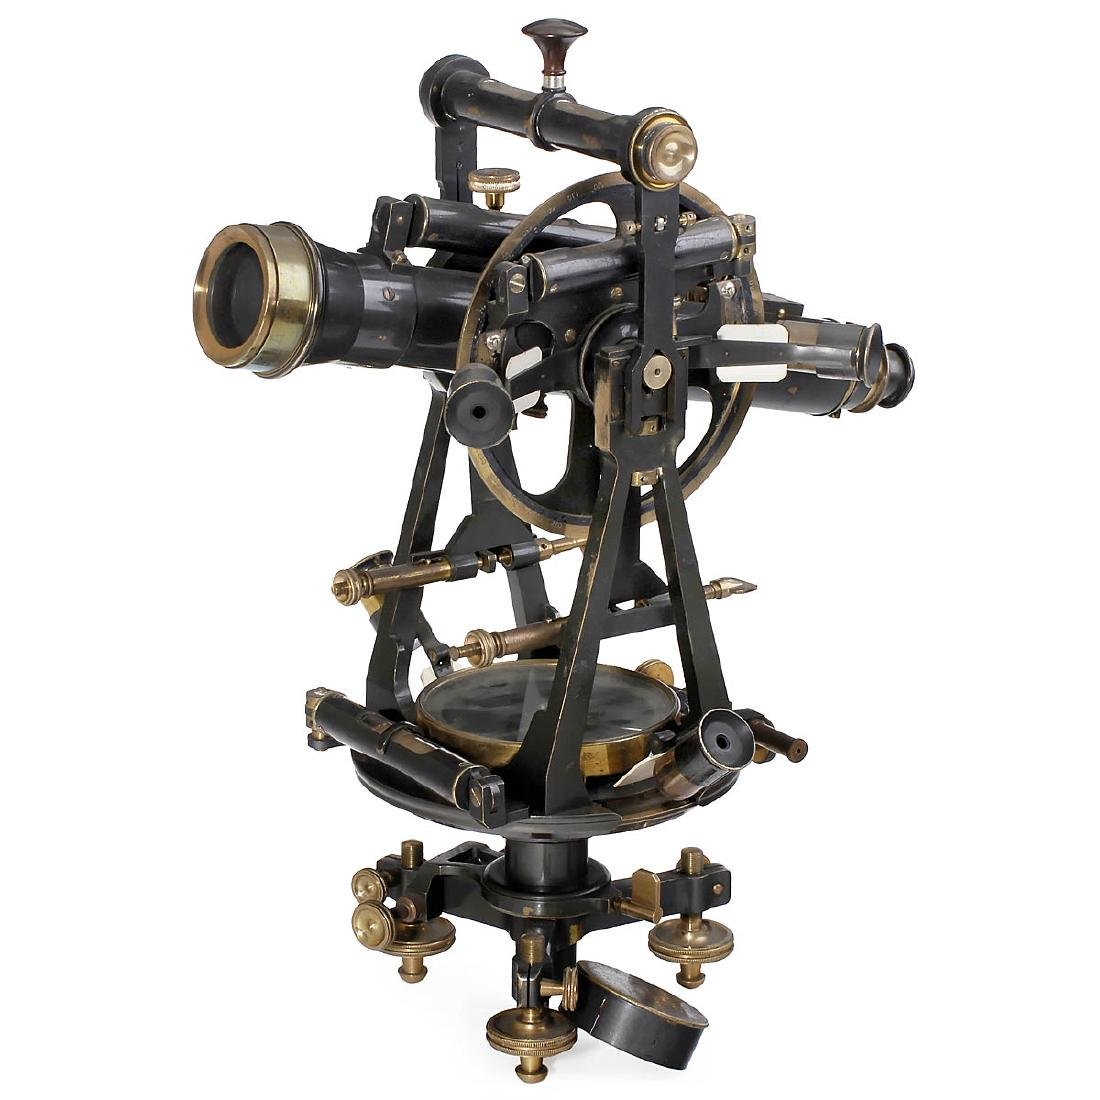 Large Italian Precision Theodolite by Salmoiraghi, c.